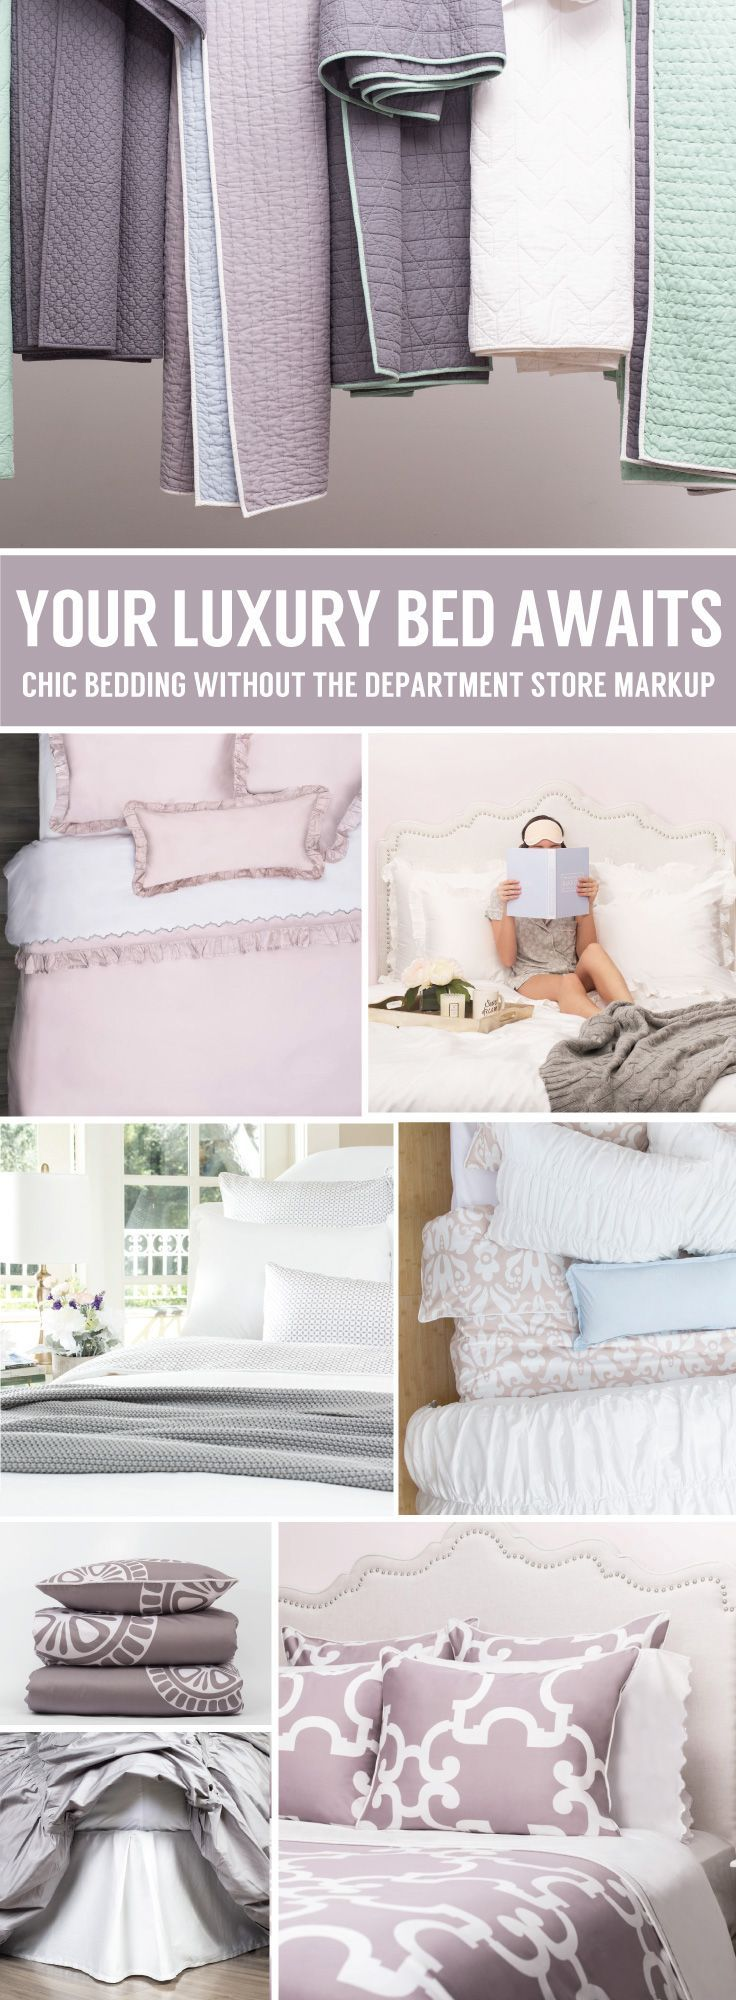 From luxury sheets to designer bedding and colorfully patterned duvets, find your perfect bedding that fits your style. Discover a better way to shop for bedding with craneandcanopy.com. Named best site for bedding by HGTV.